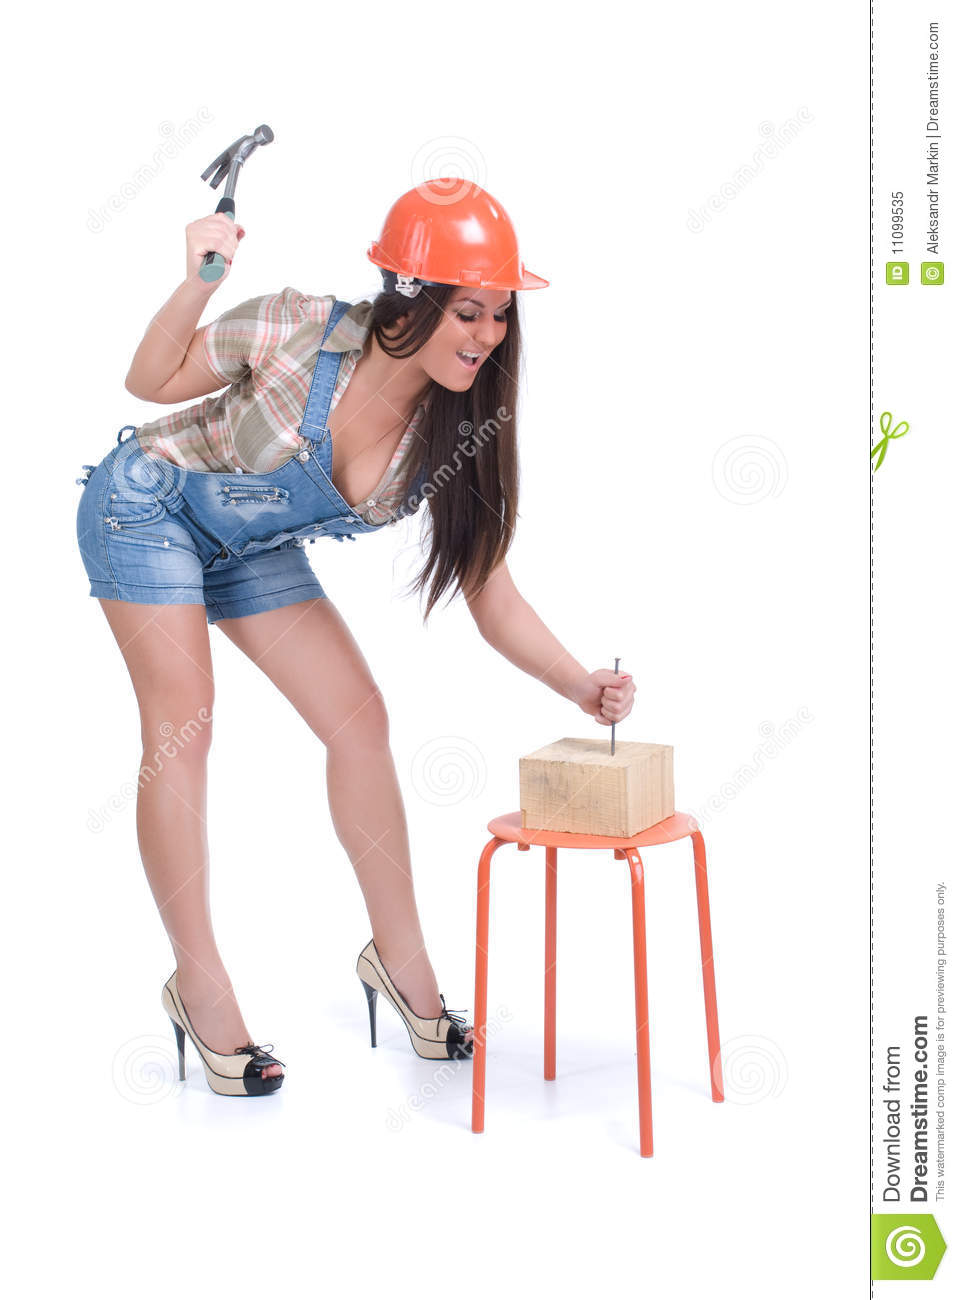 Emotional Woman Hammer In Nail Stock Image Image 11099535